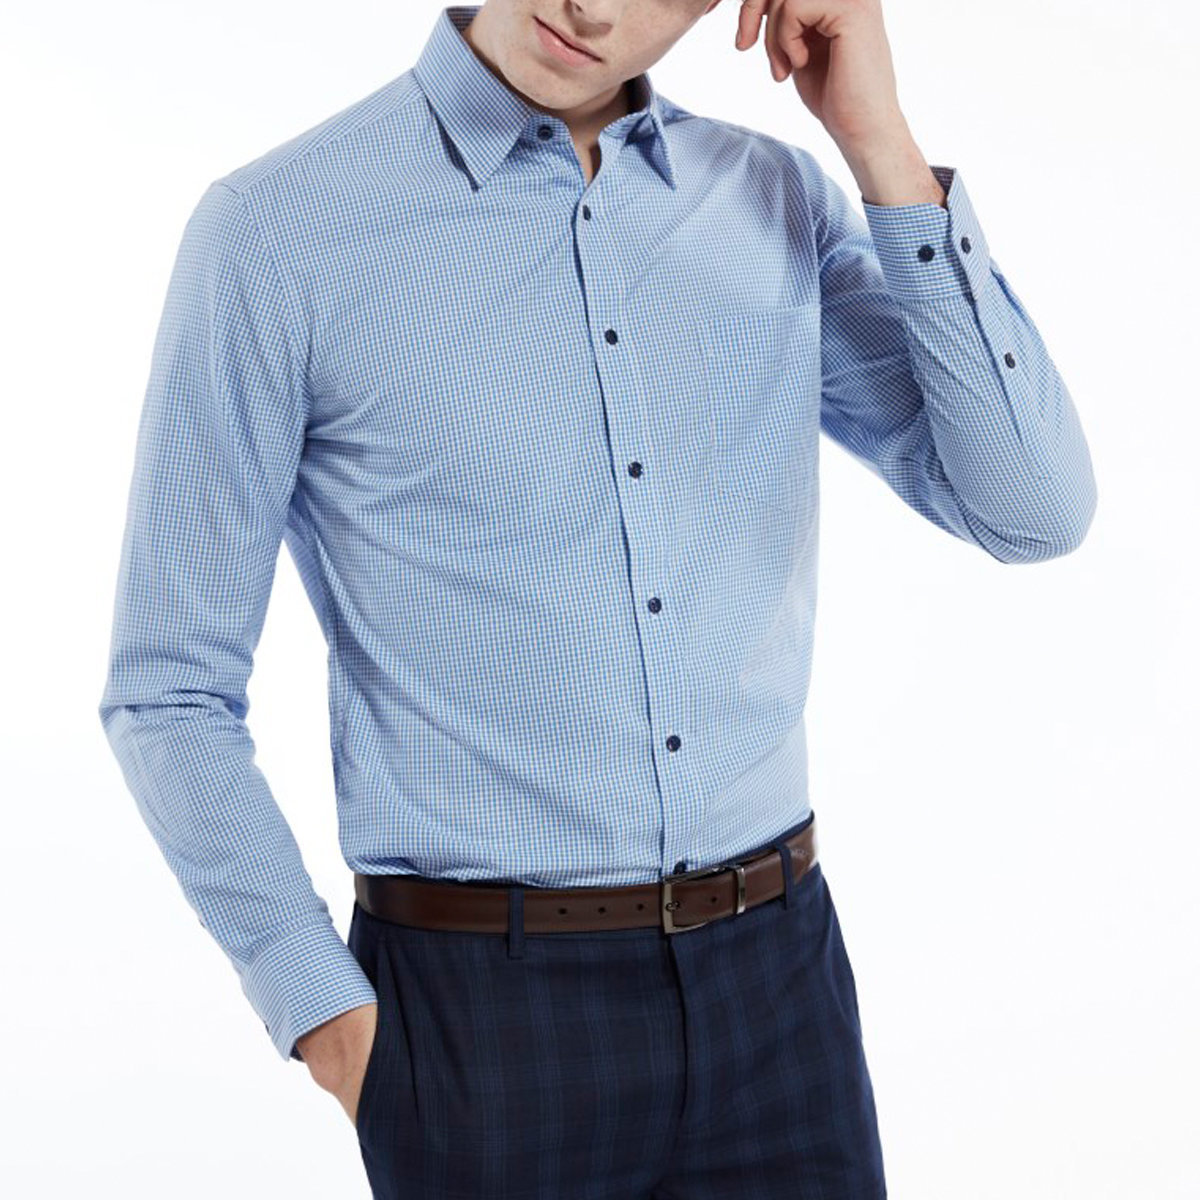 Men's Comfort Cotton Checked Shirt (Twilight Blue)